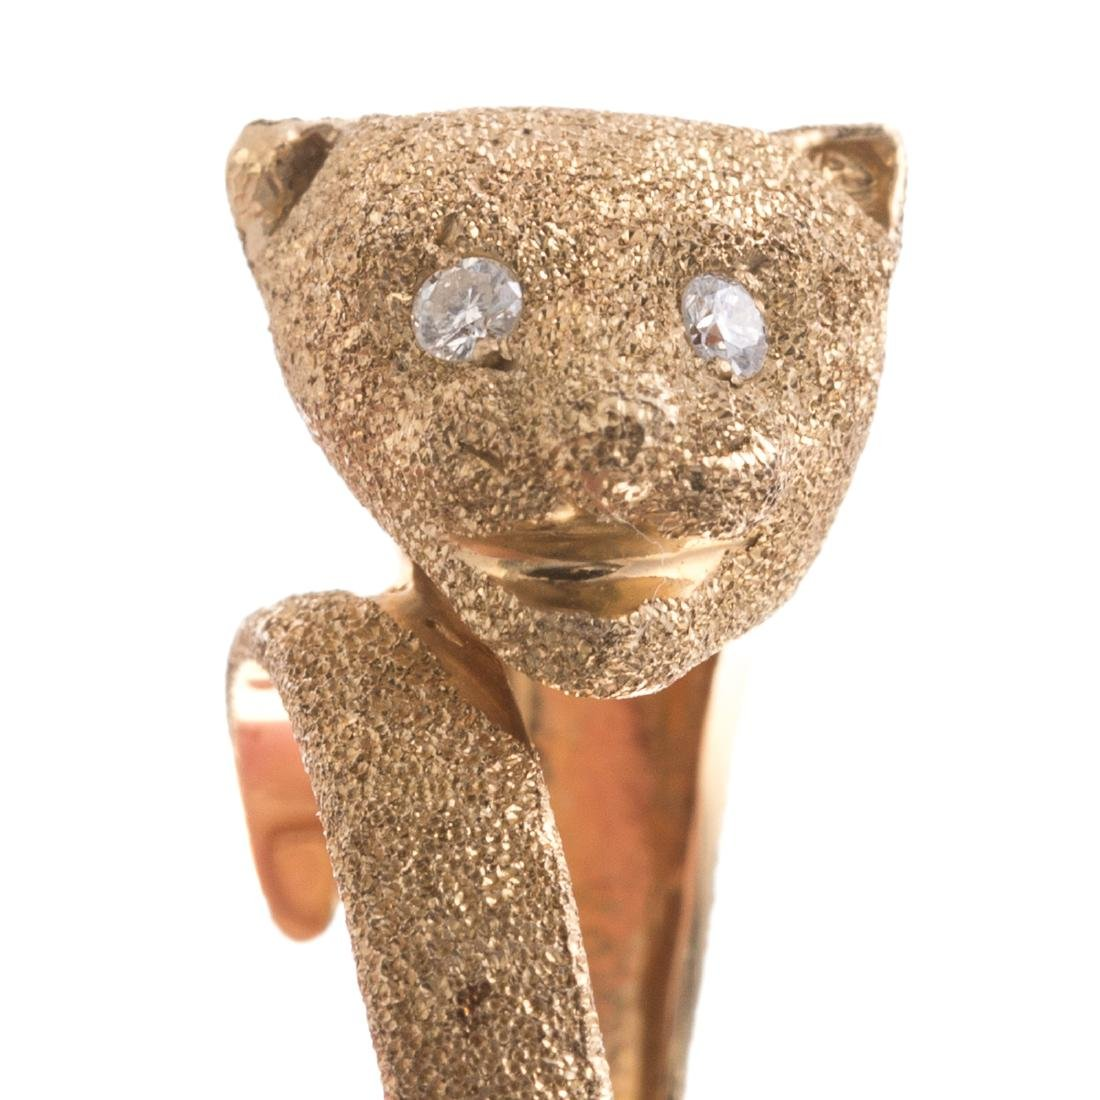 A Lady's 14K Panther Ring with Diamond Eyes - 6